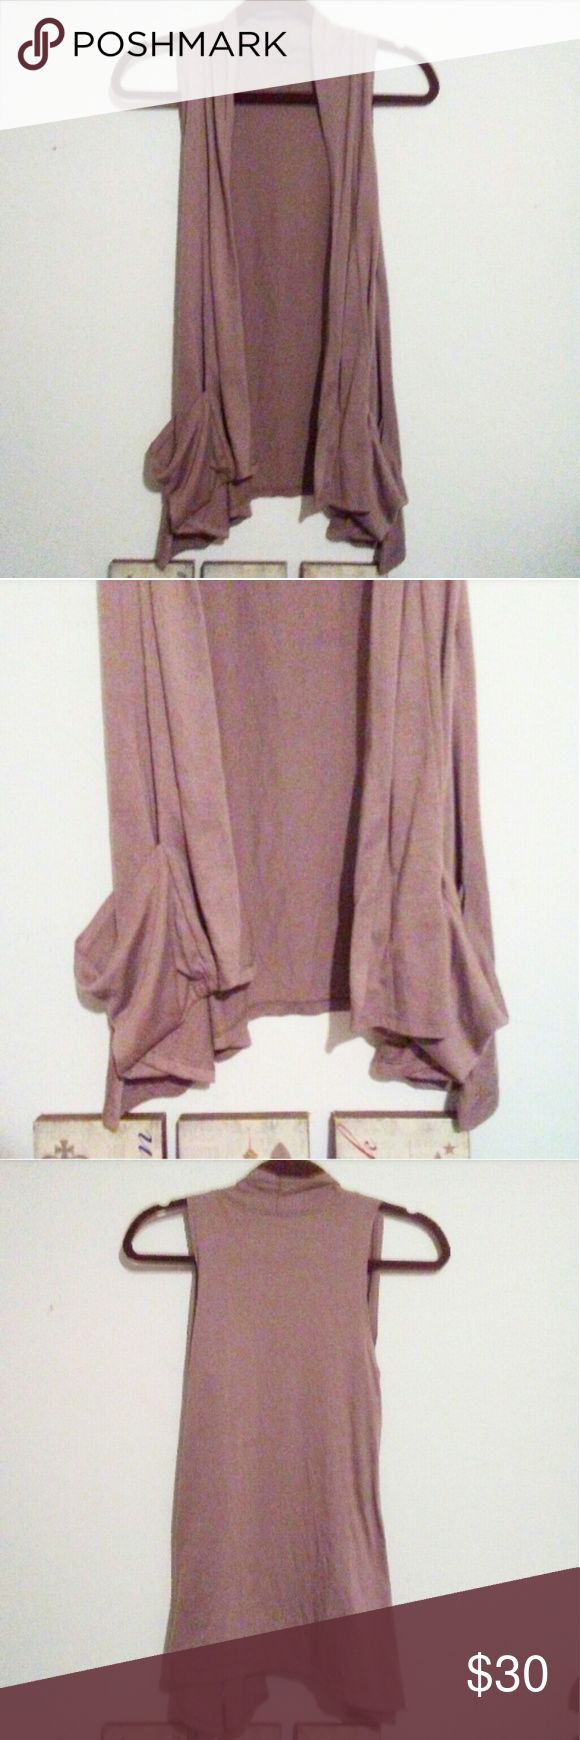 Celebrity Pink Vest Cute soft tan colored long vest with pockets. Great condition  Really cutebwith anything! Celebrity Pink Tops